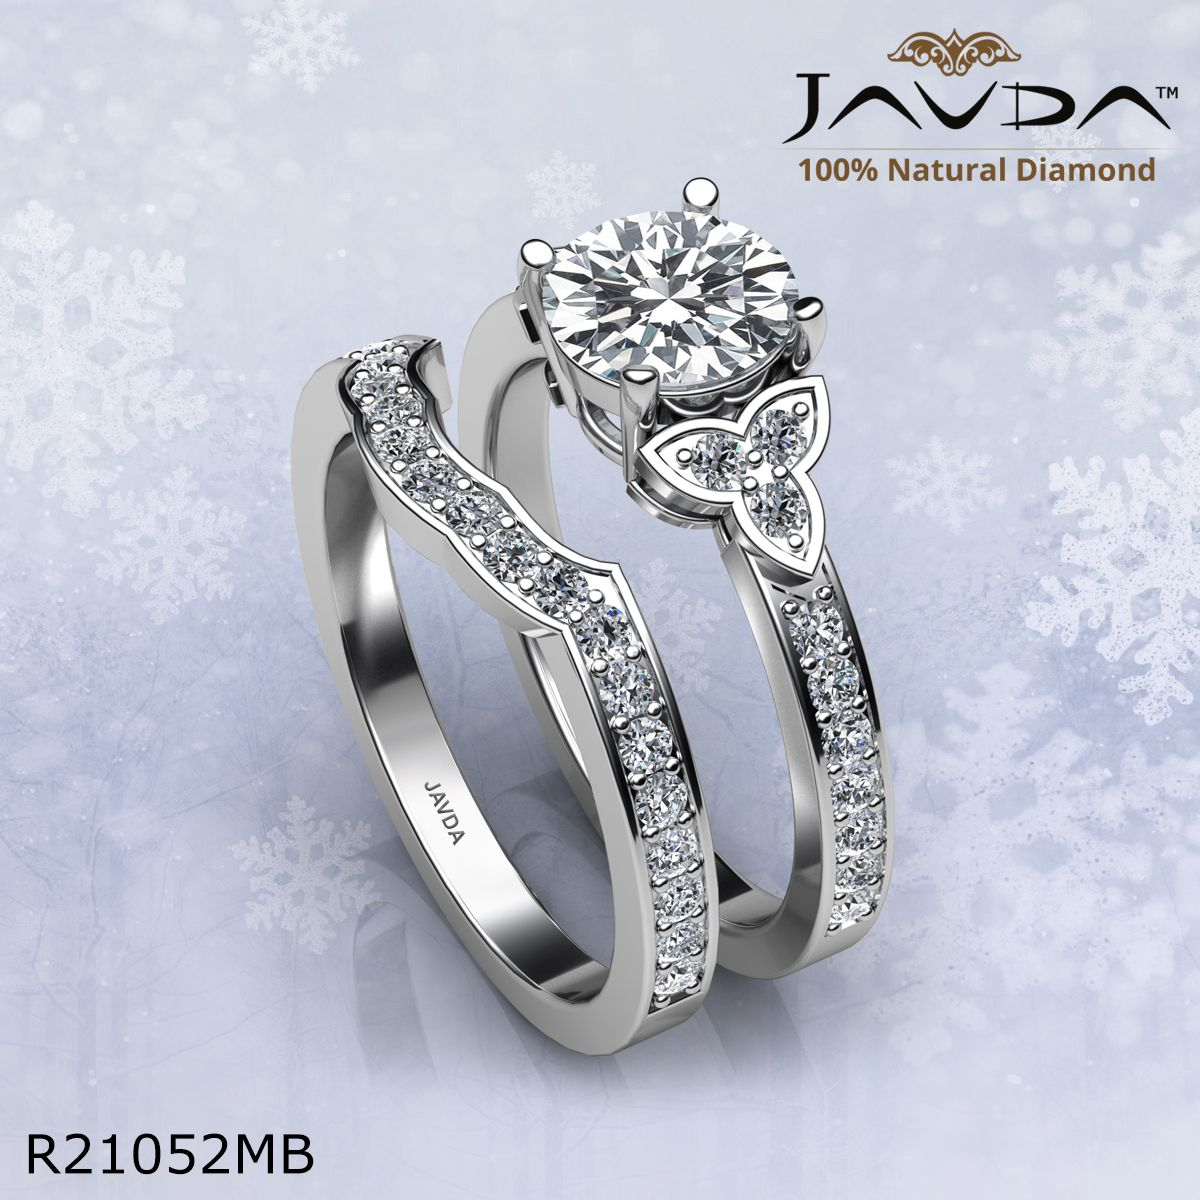 This Elegant Bridal Set Collection Made In 14k Gold And Platinum 950 Javdacollection Sh Diamond Engagement Ring Set Wedding Ring Sets Diamond Bridal Sets